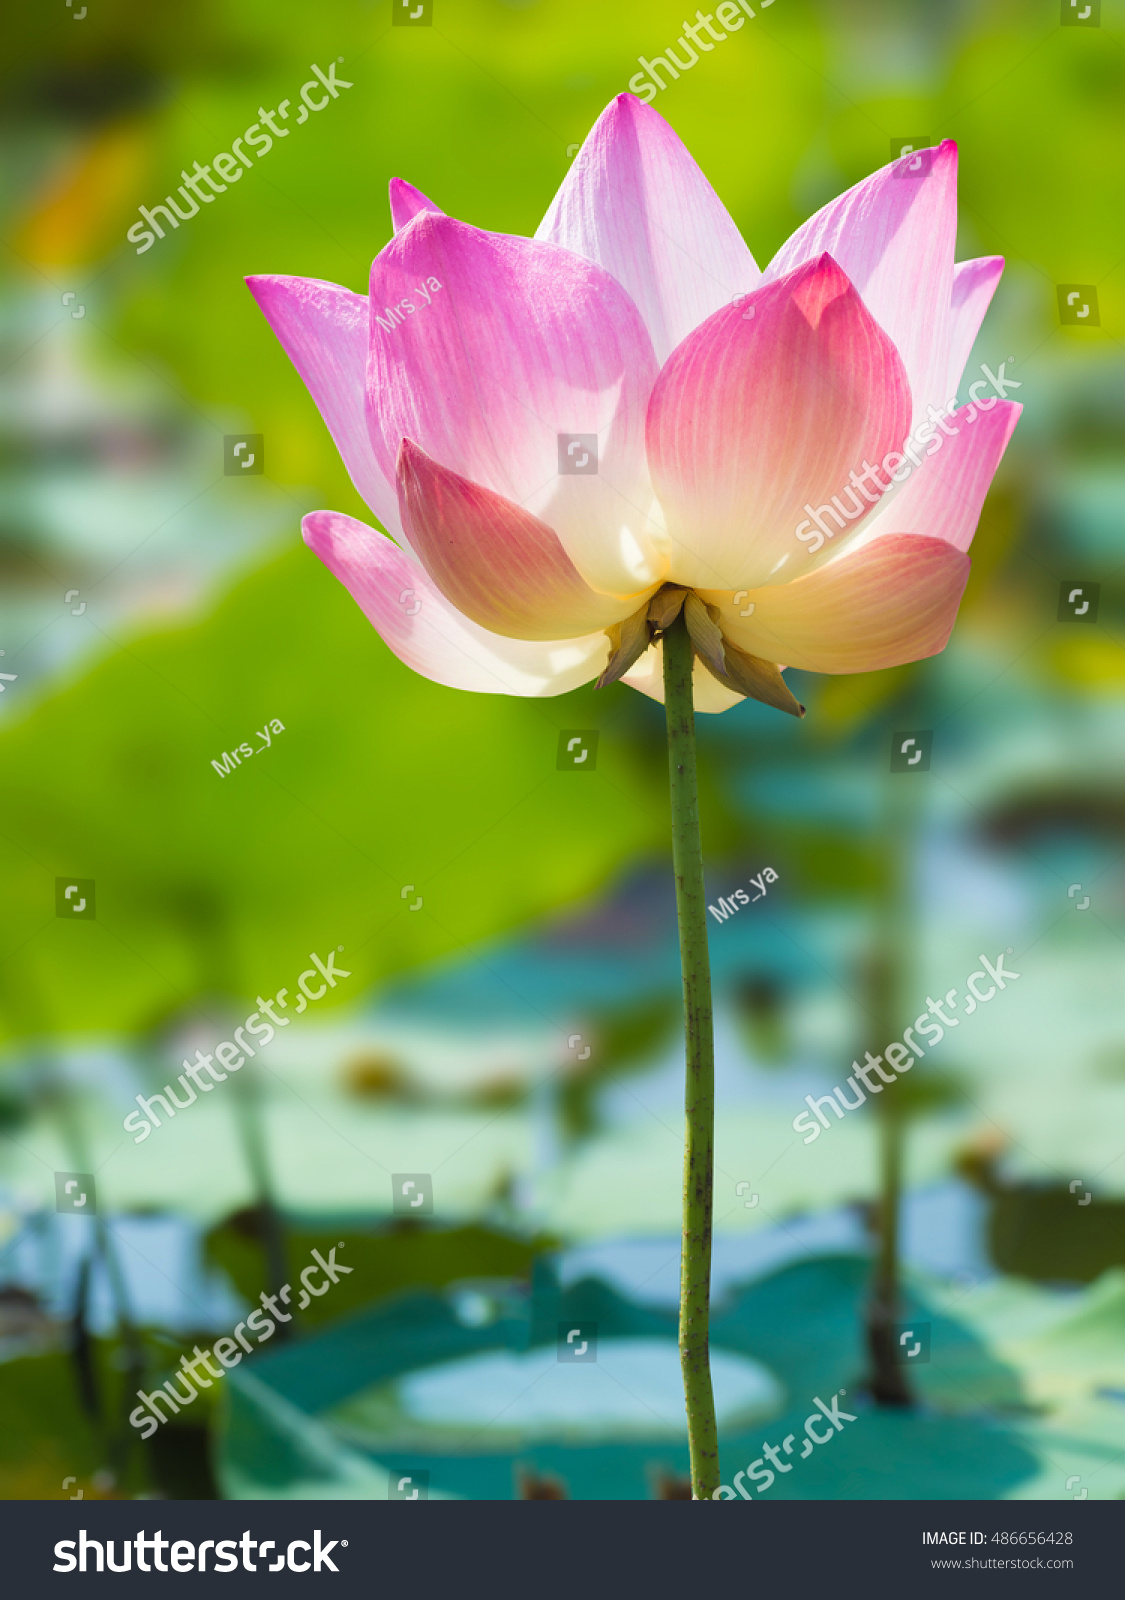 Pink lotus flower blooming outdoor pond stock photo royalty free pink lotus flower blooming in the outdoor pond in nature izmirmasajfo